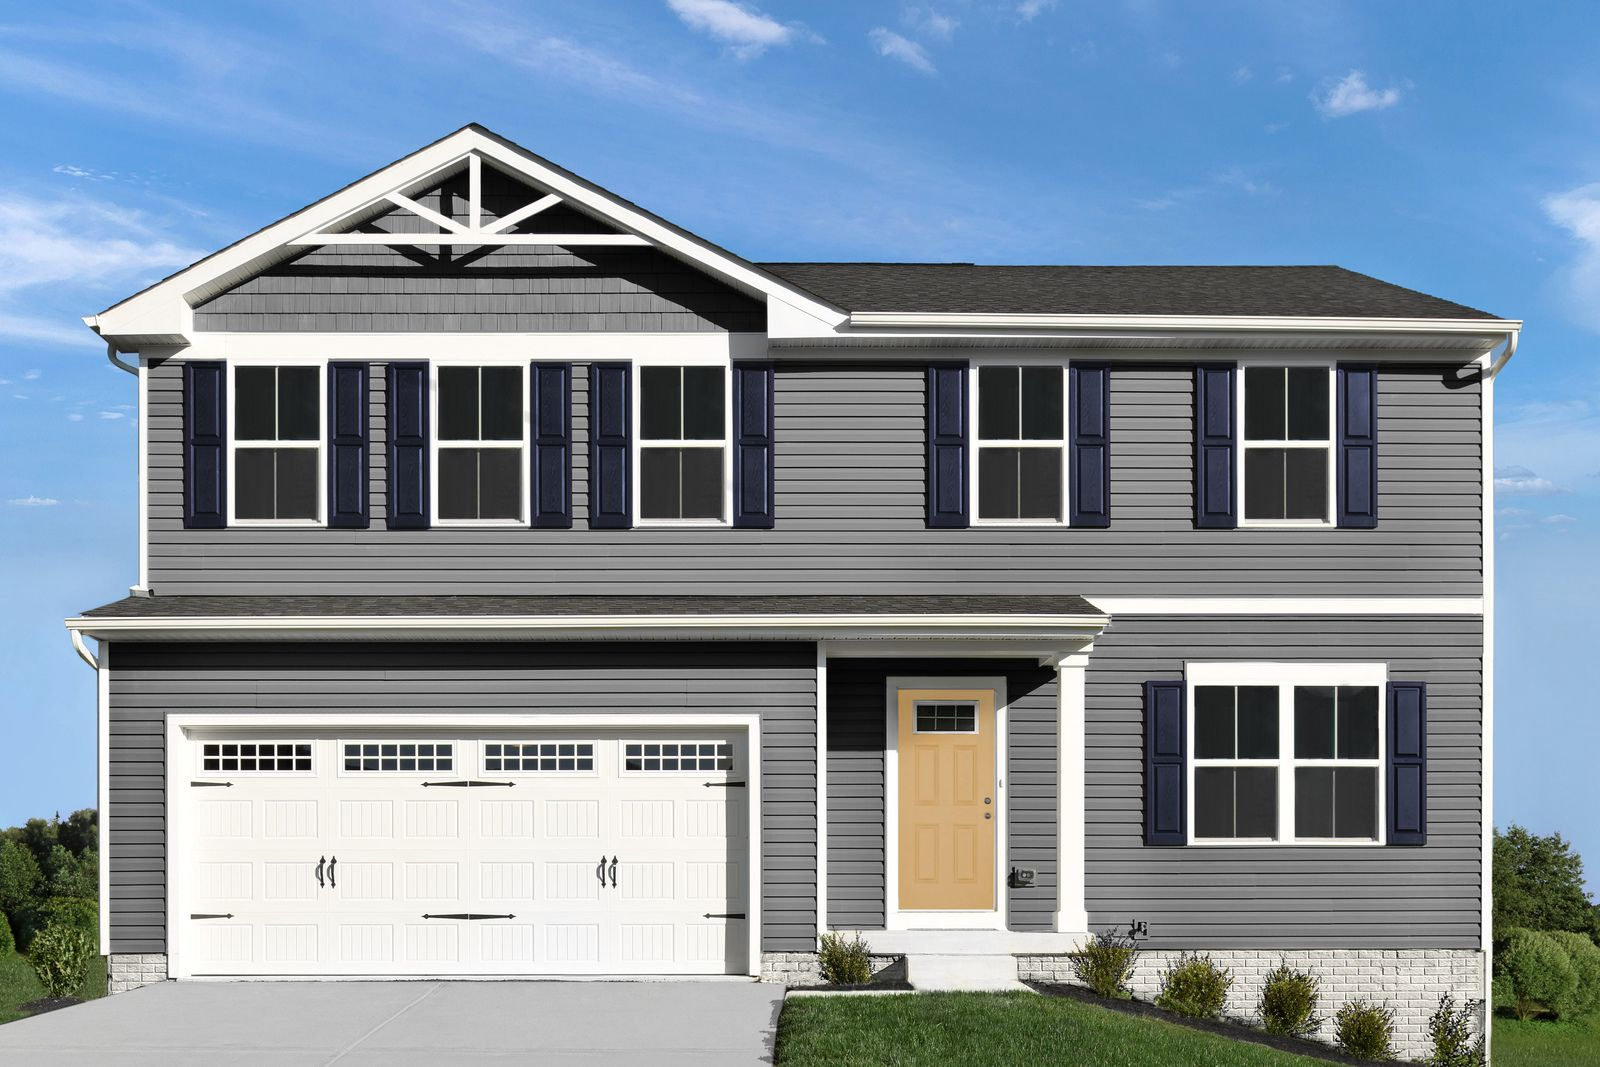 WELCOME TO HIDDEN LAKES 2-STORY:Best-priced new homes in Springfield area—Lakemore. Community pavilion, playground, & dog park. Appliances included-from upper $200s.Schedule your visit today!